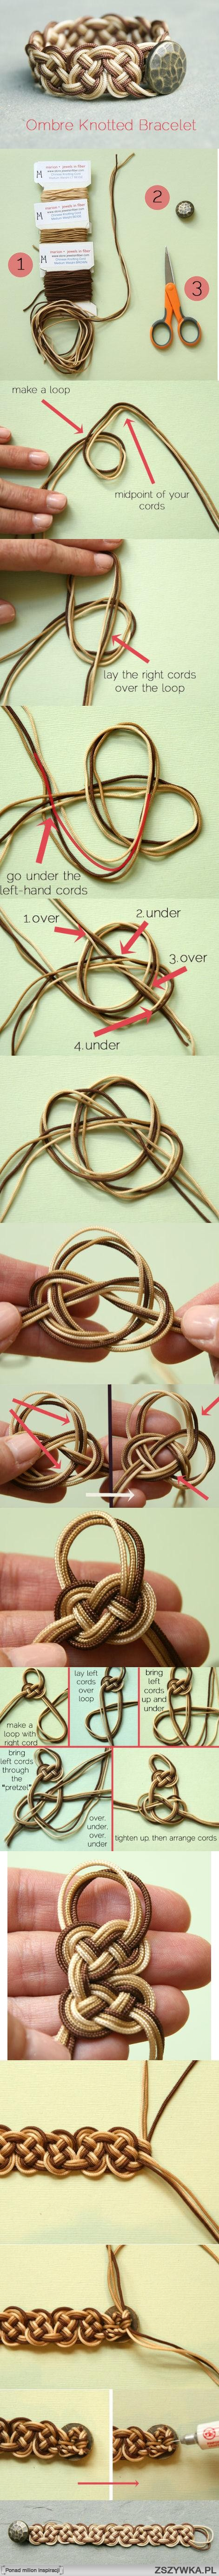 How to DIY Ombre Celtic Knot Bracelet